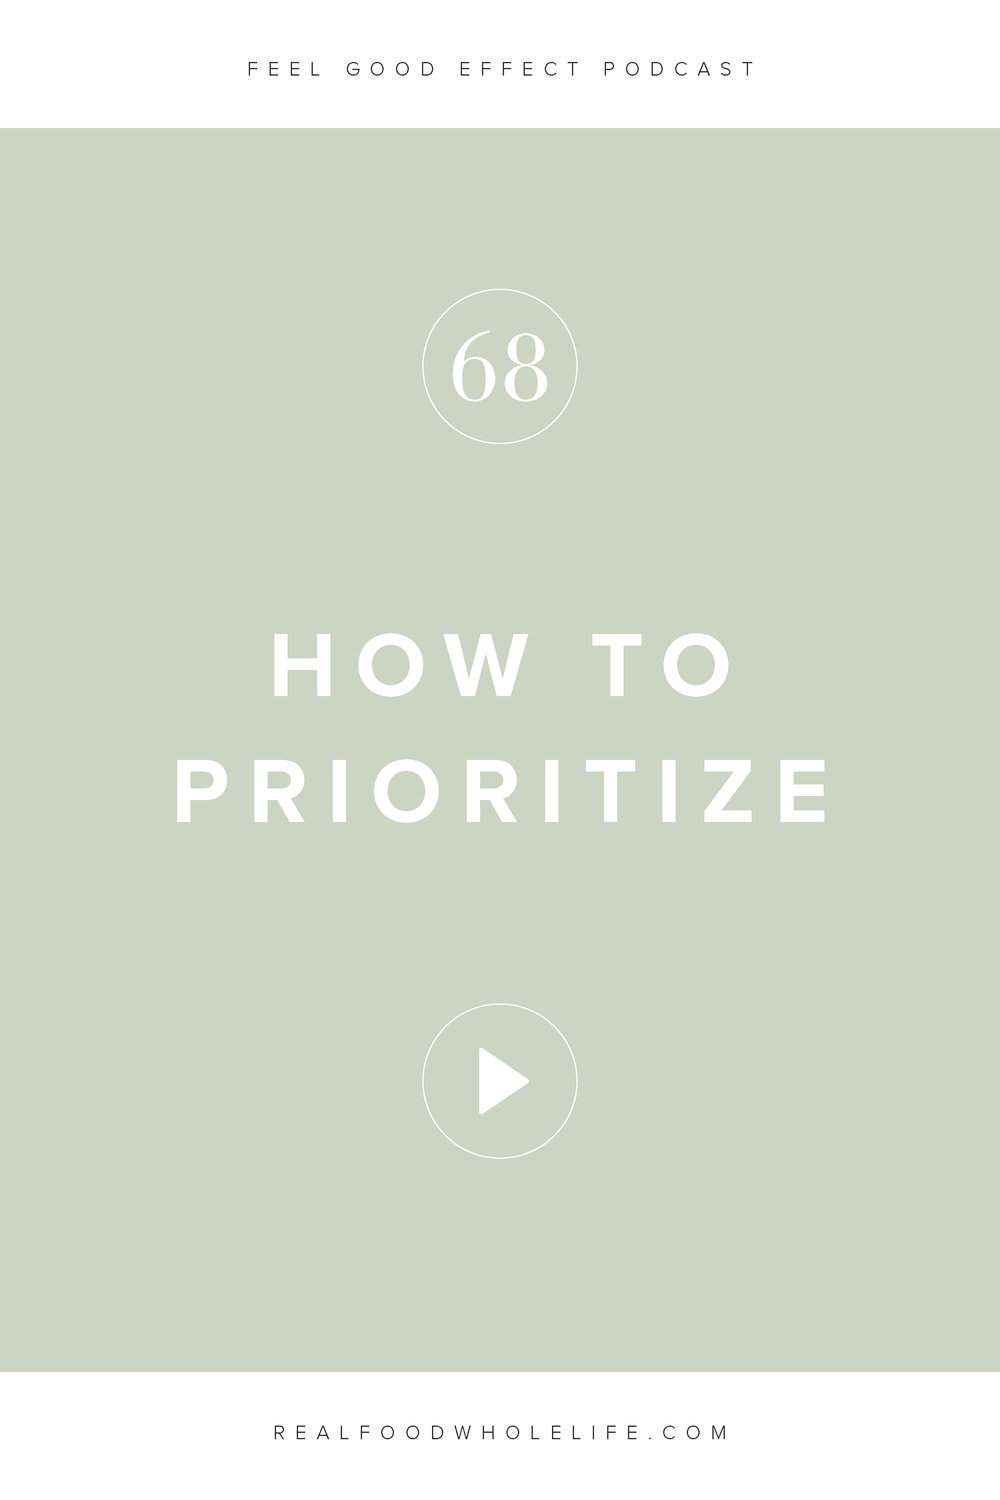 How to Prioritize When Everything's Important, and episode from the Feel Good Effect all about how to pull meaning out of all the noise. #realfoodwholelife #feelgoodeffectpodcast #personaldevelopment #selfcare #selfimprovement #podcast #wellnesspodcast #healthpodcast  #wellness #wellnesspodcast  #healthandwellness #healthandwellnesspodcast